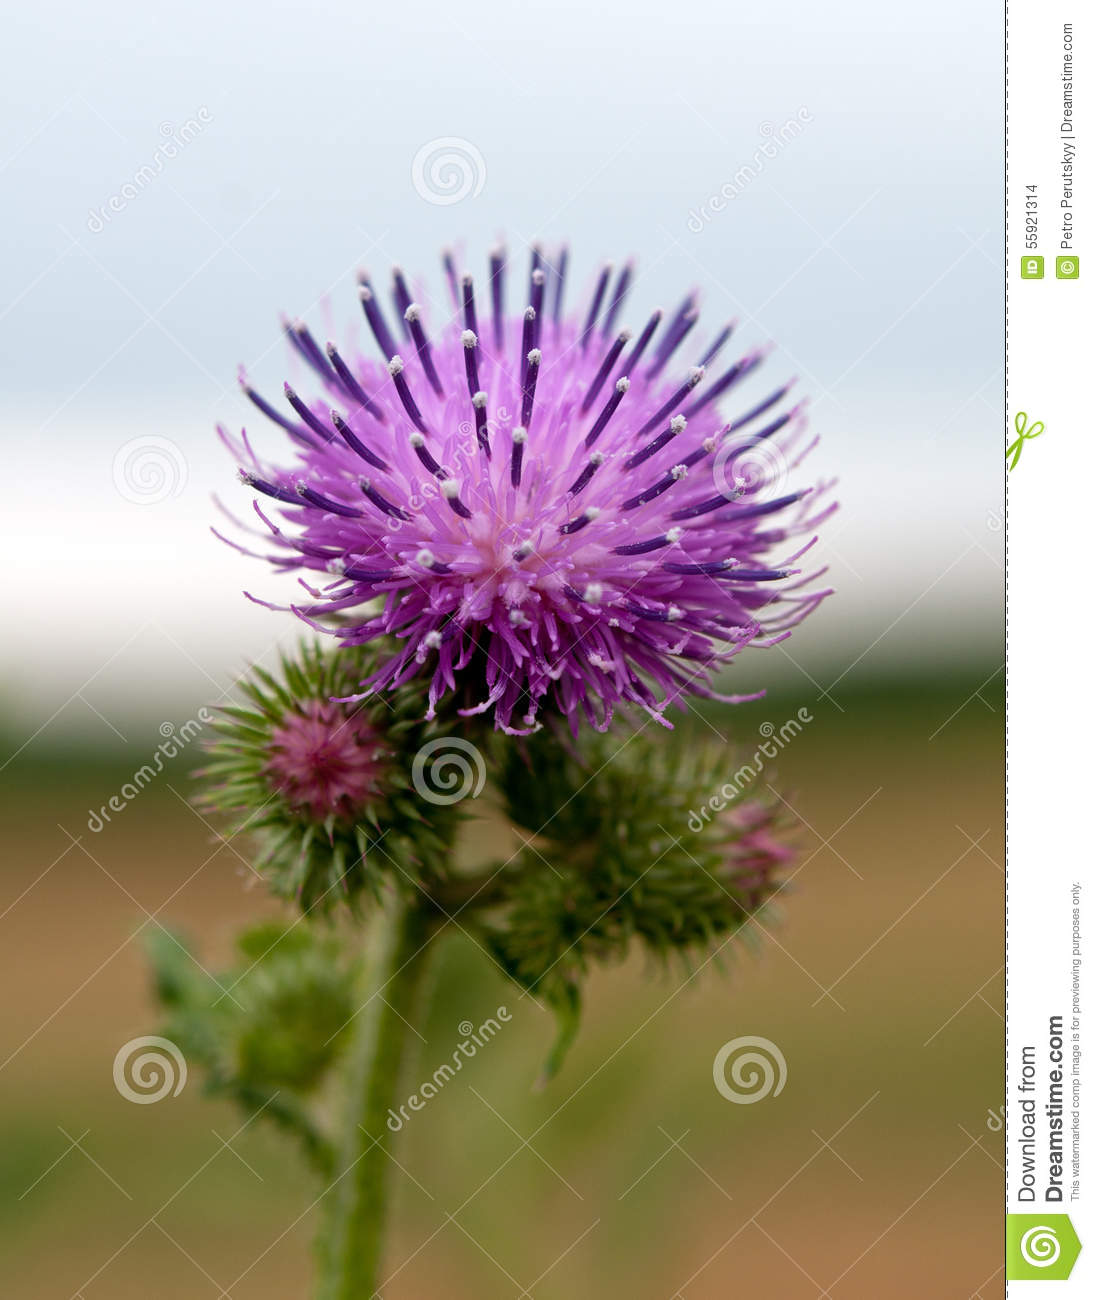 how to make milk thistle tea from plant